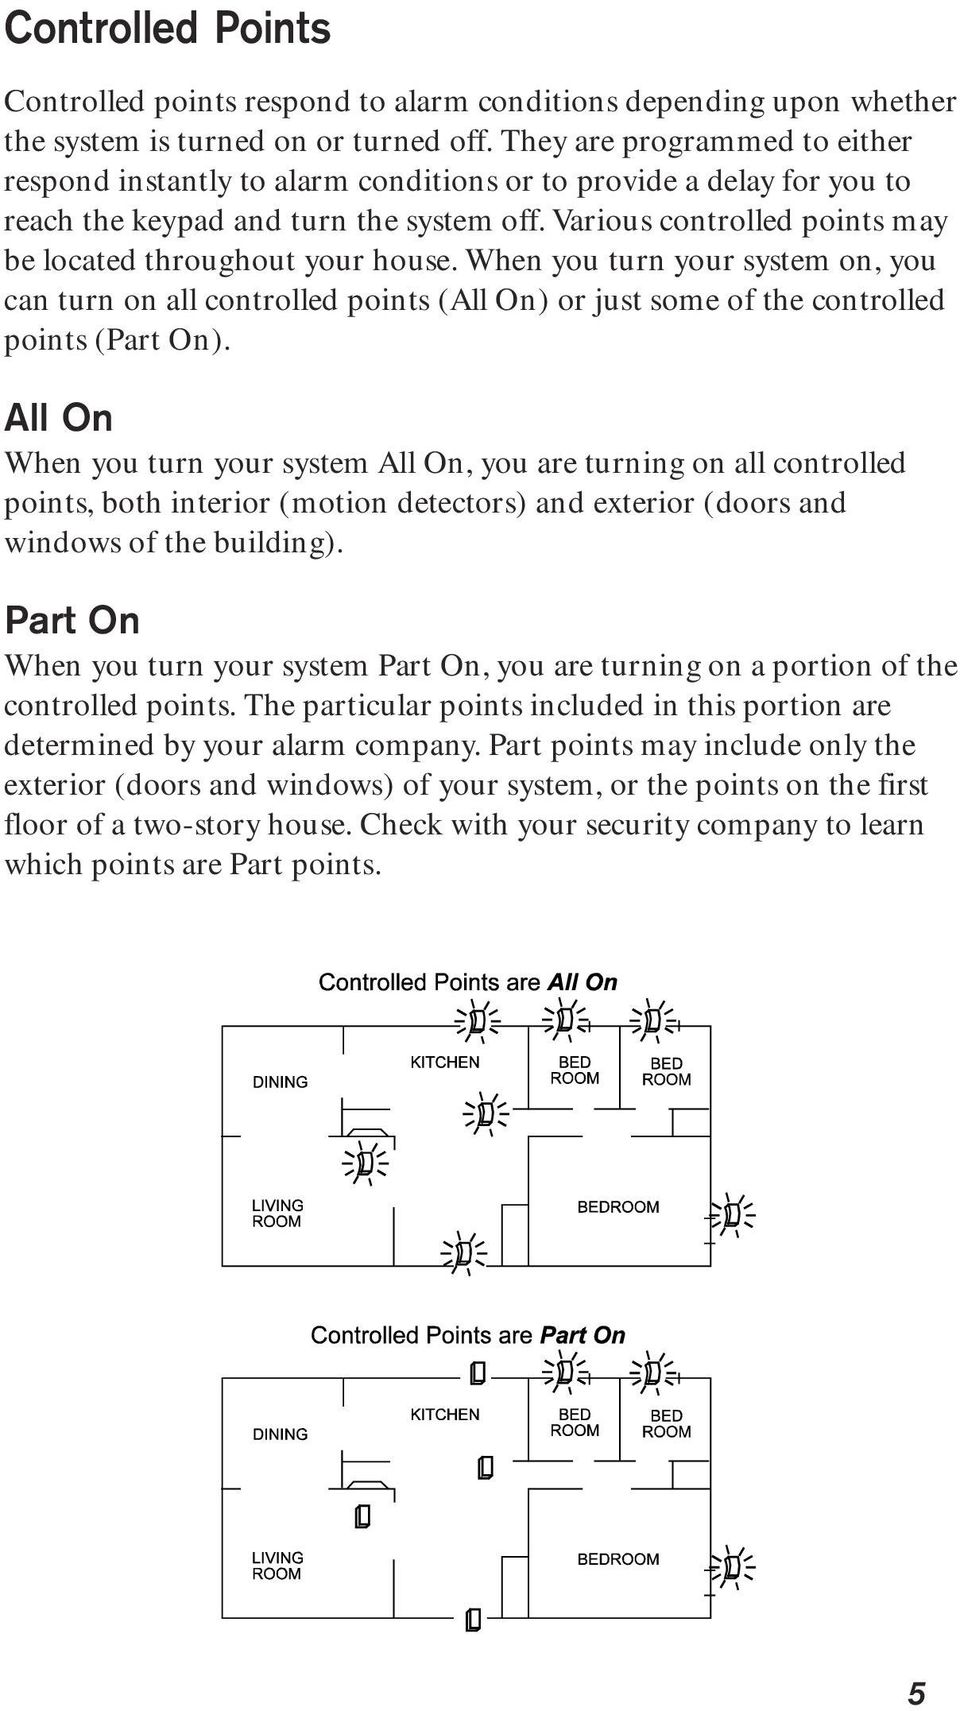 Various controlled points may be located throughout your house. When you turn your system on, you can turn on all controlled points (All On) or just some of the controlled points (Part On).